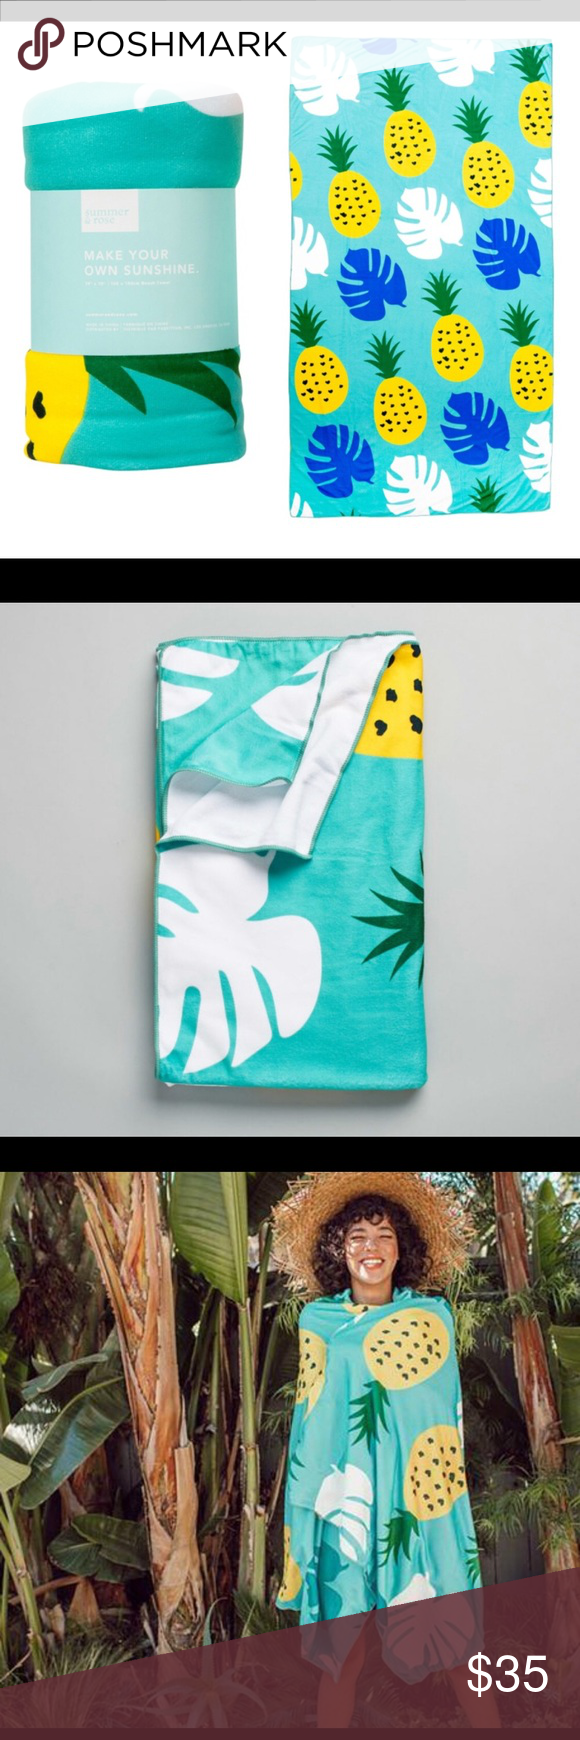 Summer Rose Pineapple Large Beach Towel Fff New Nwt In 2018 My